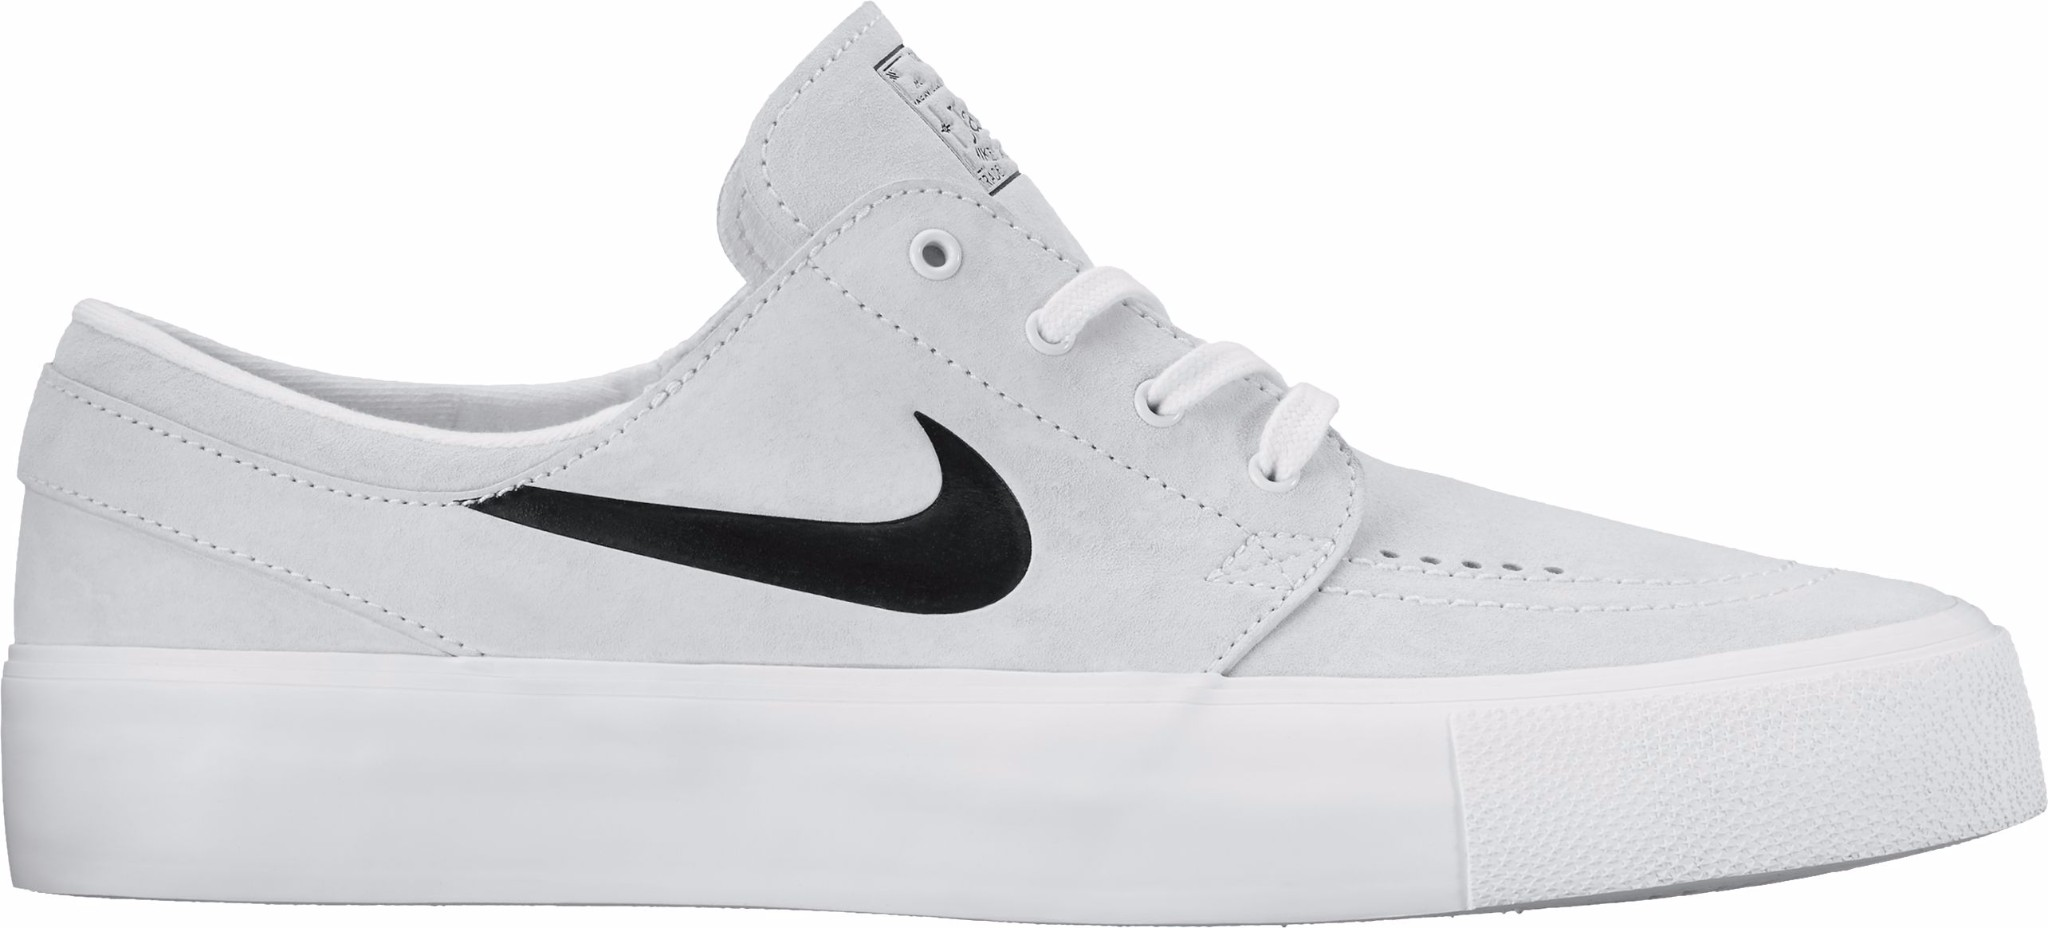 Nike SB Shoes Janoski Premium HT Summer White Black US SIZE Skateboard Sneakers free post